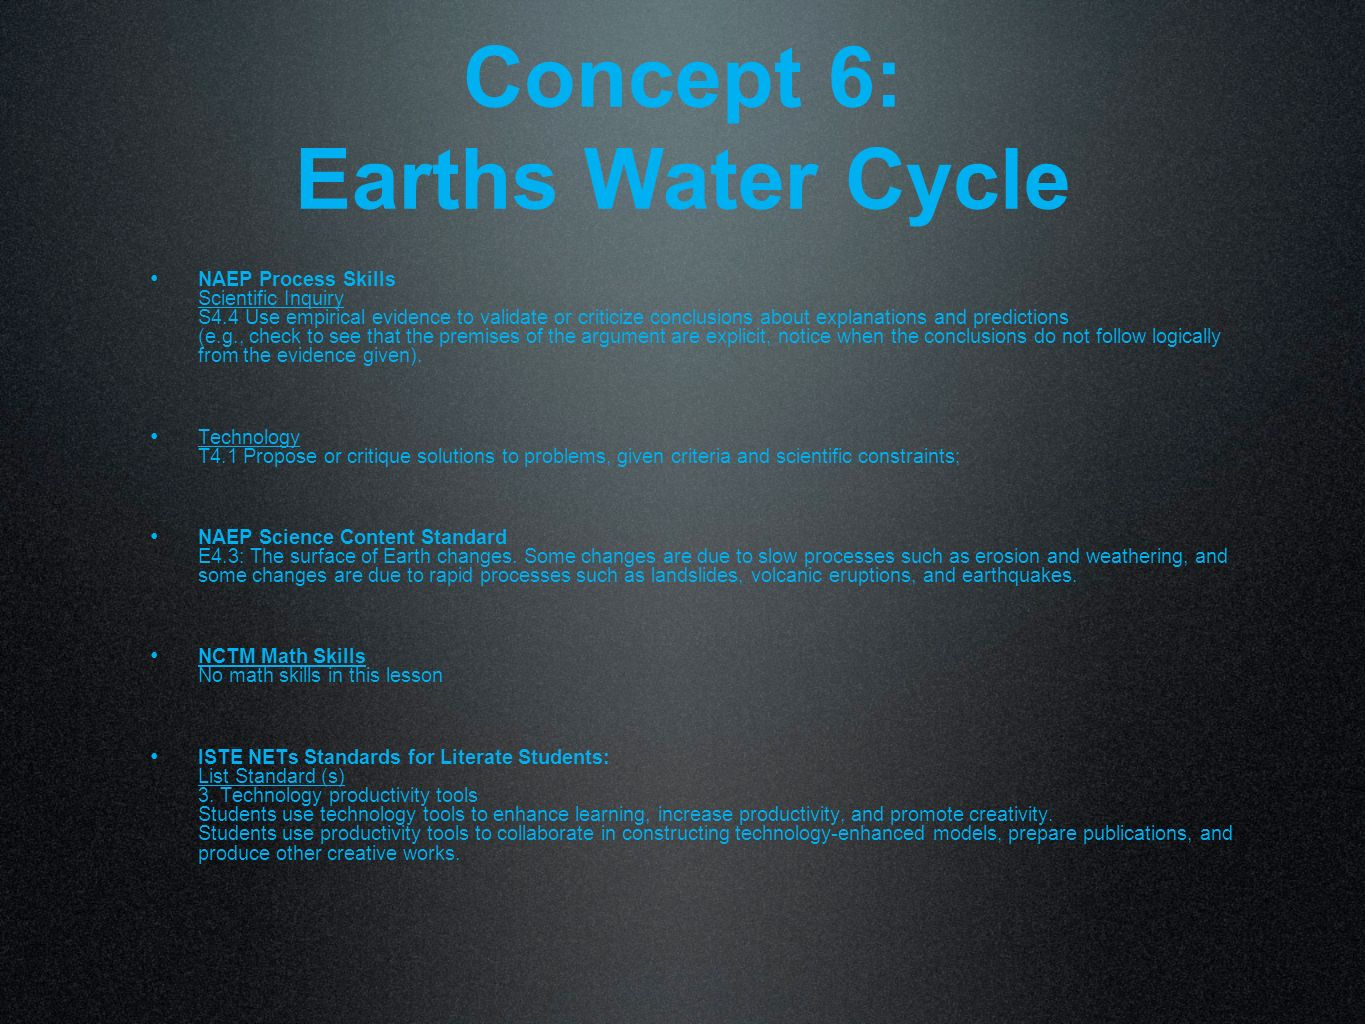 Concept 6: Earths Water Cycle